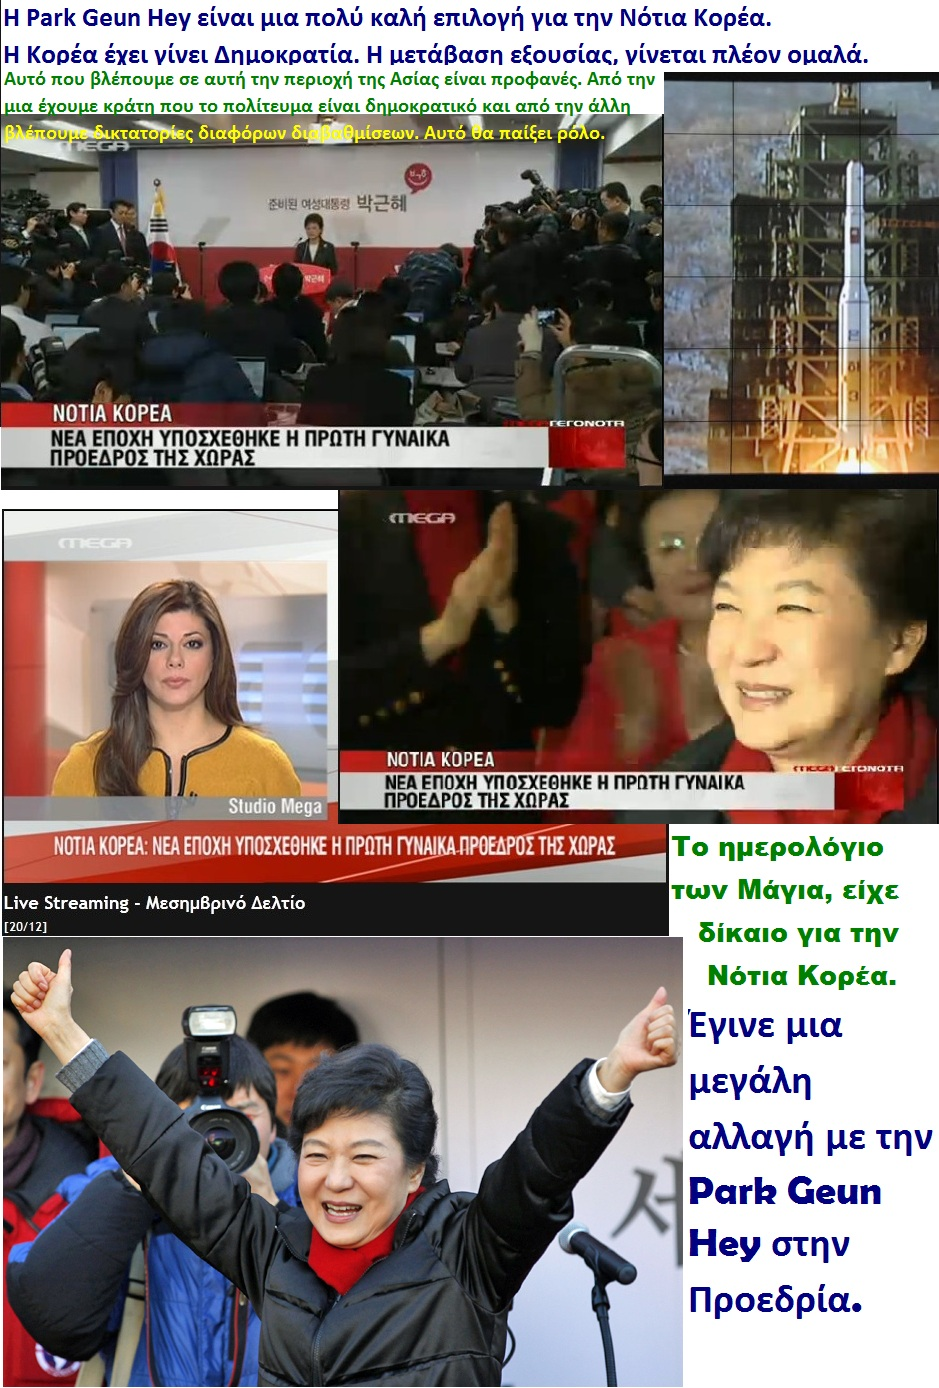 SOUTH KOREA WOMAN PRESIDENT 01 01 201212 (2)